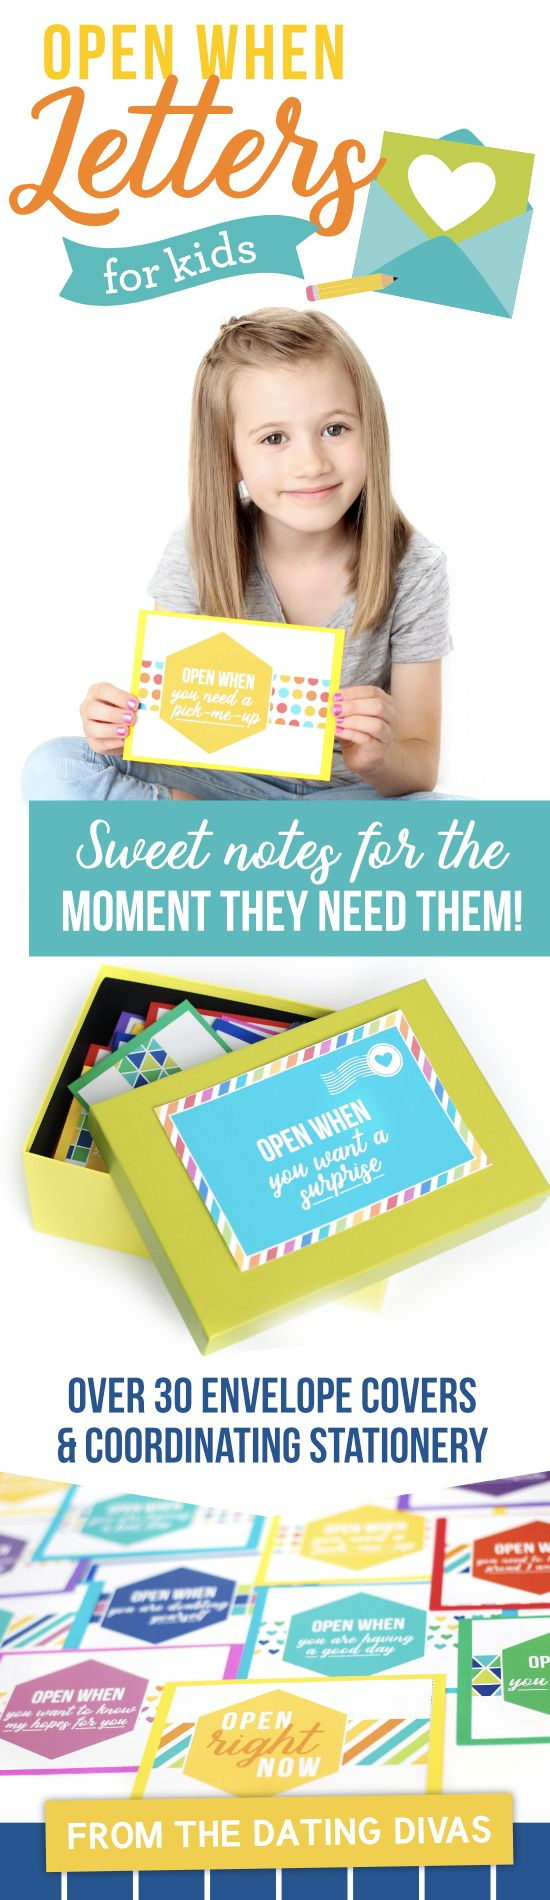 Open When Letters for Kids-  includes over 30 envelope labels and coordinating cards & stationery for writing personalized letters for kids! What an awesome keepsake!